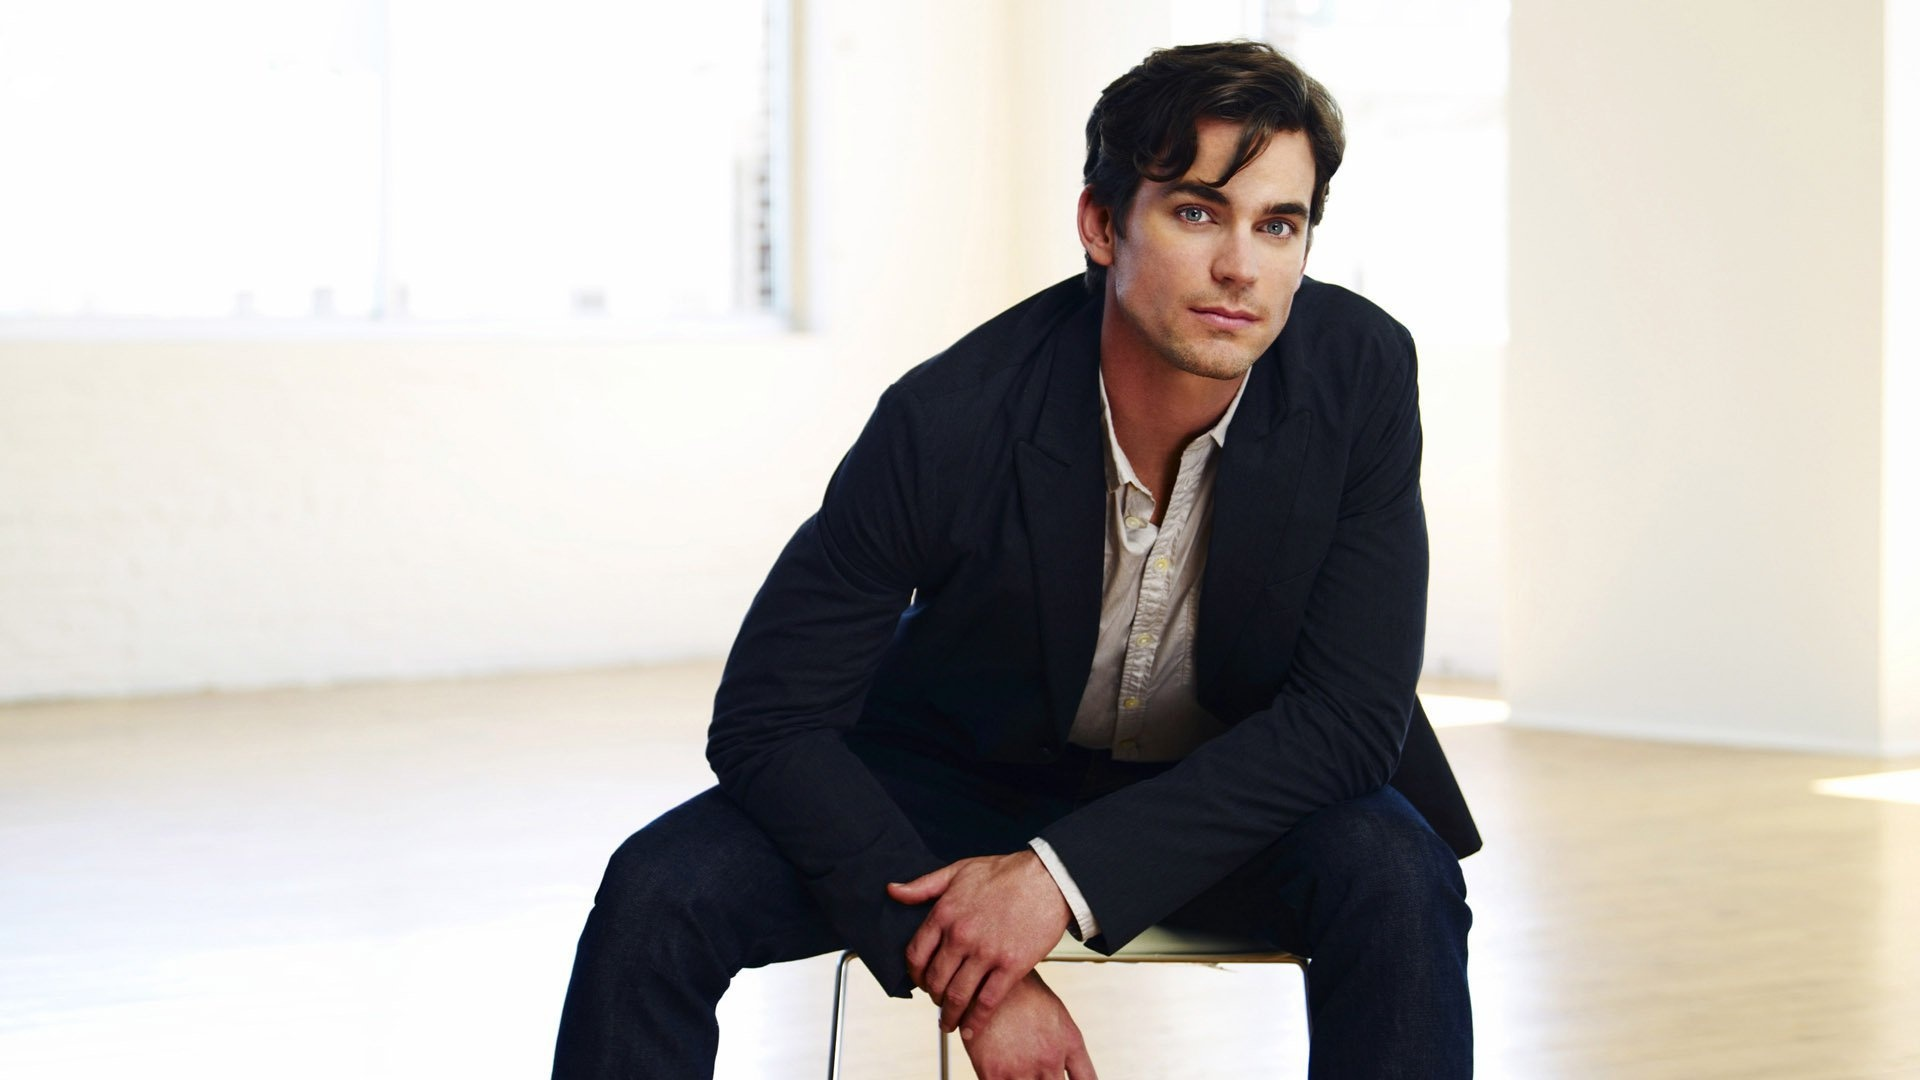 Matt Bomer Hd Wallpaper